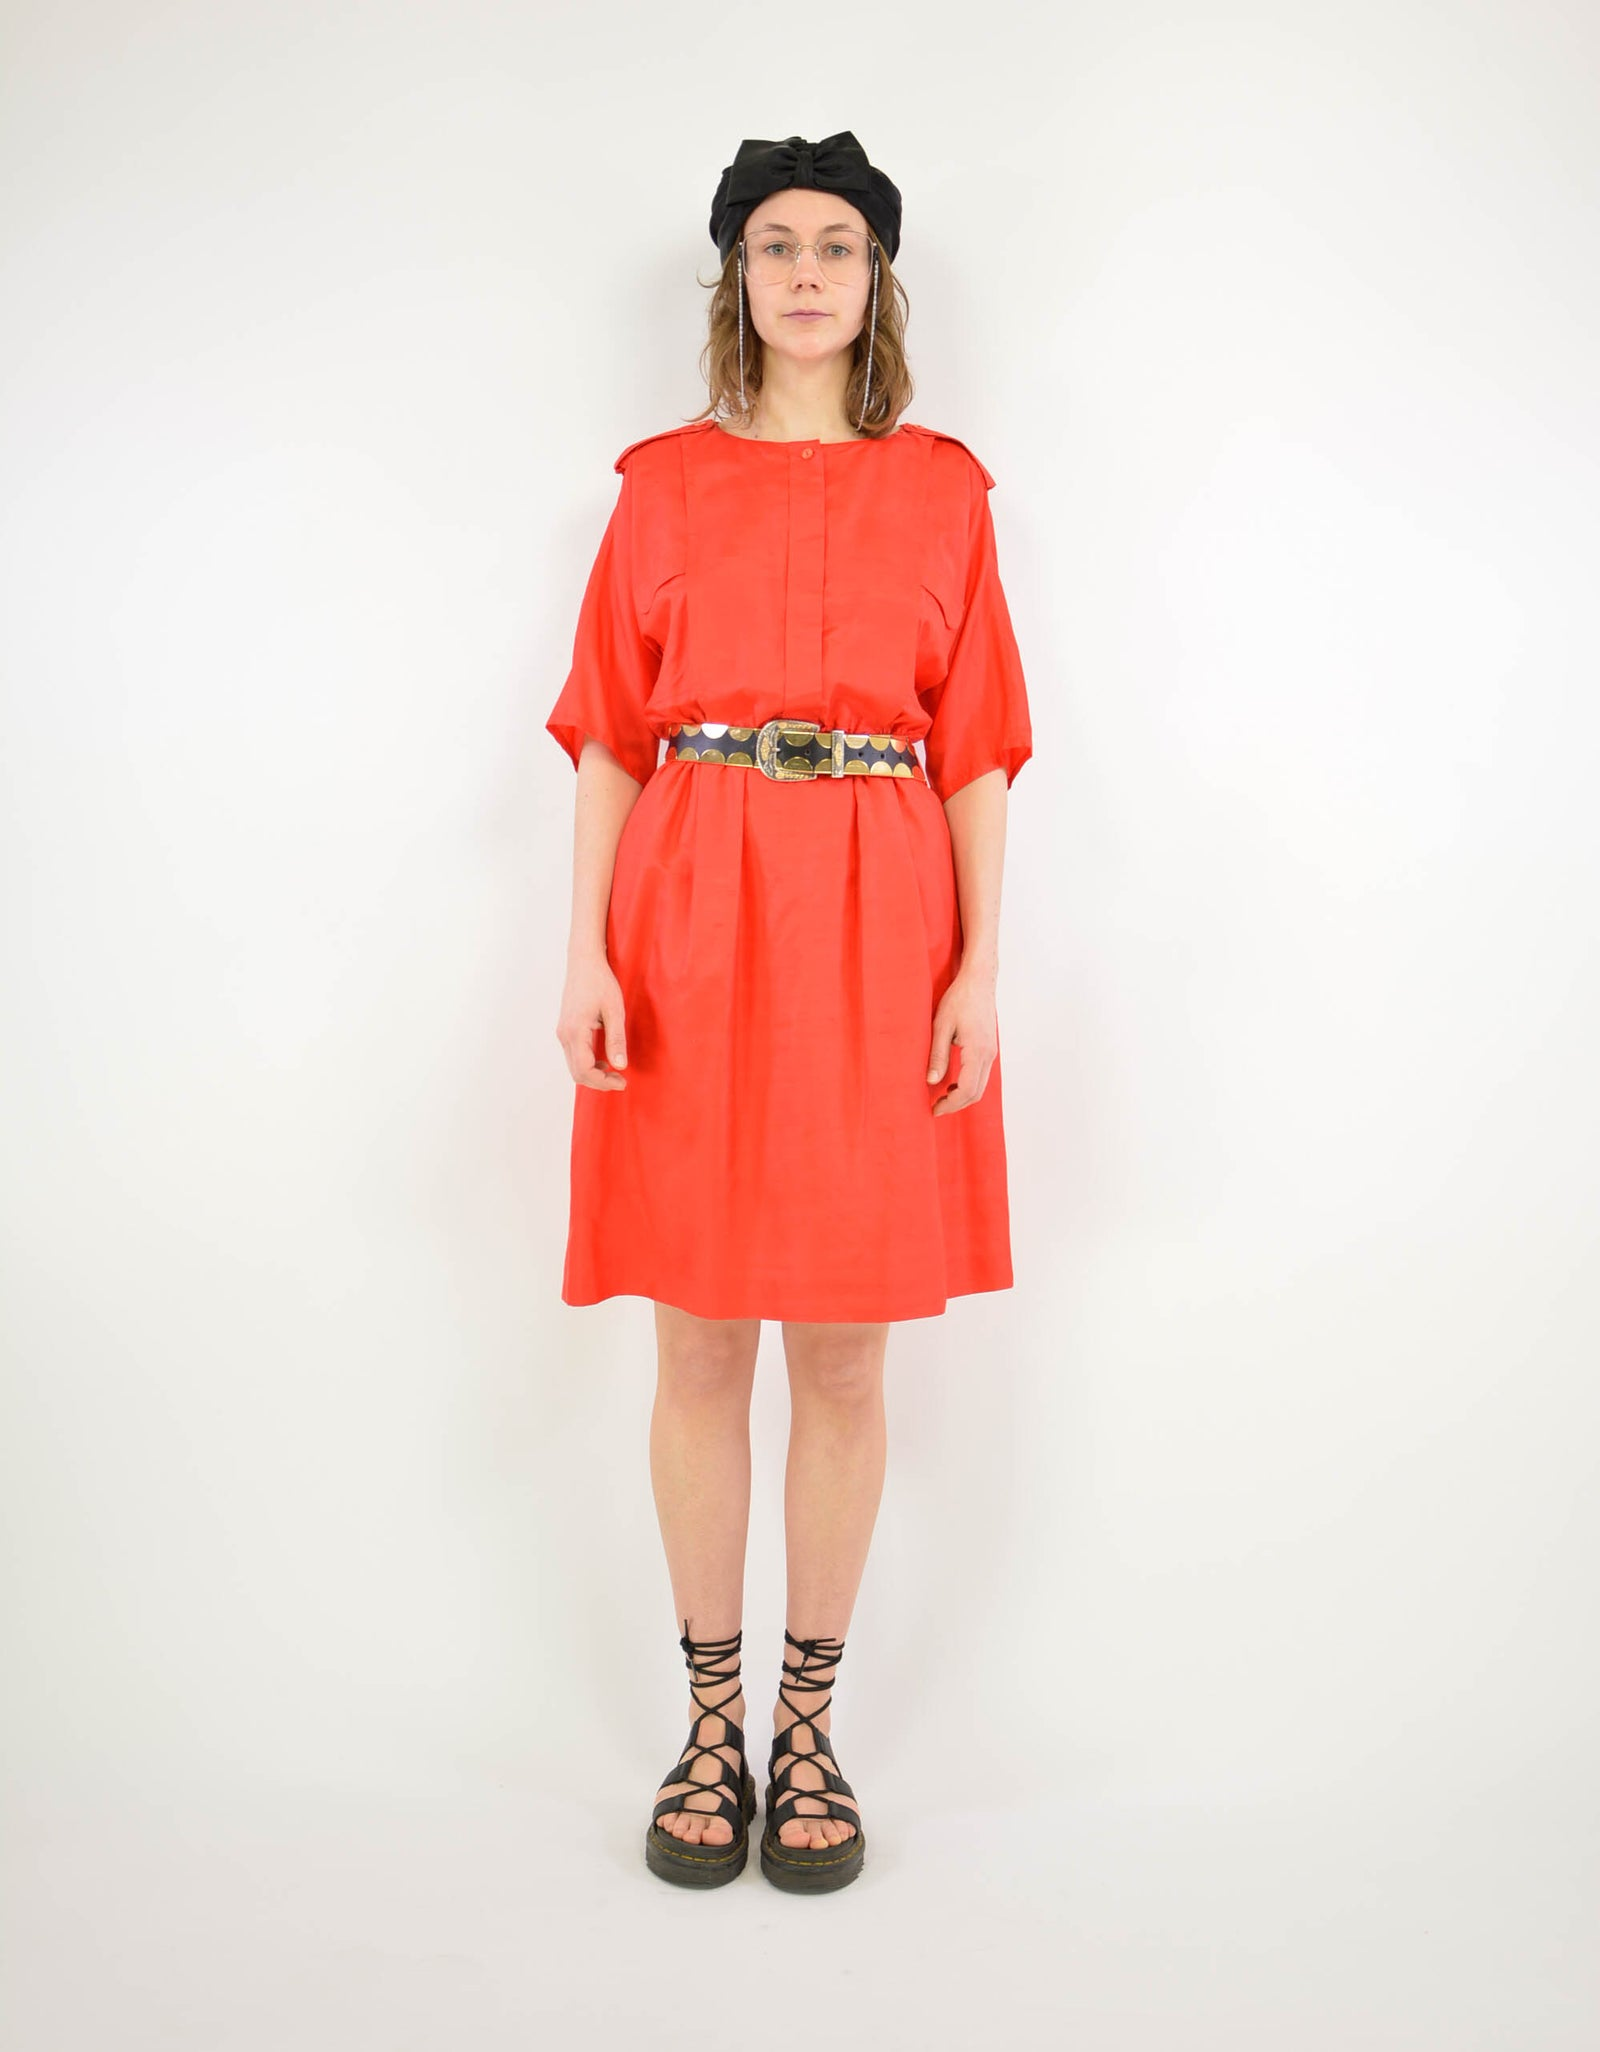 Red silk dress - PICKNWEIGHT - VINTAGE KILO STORE